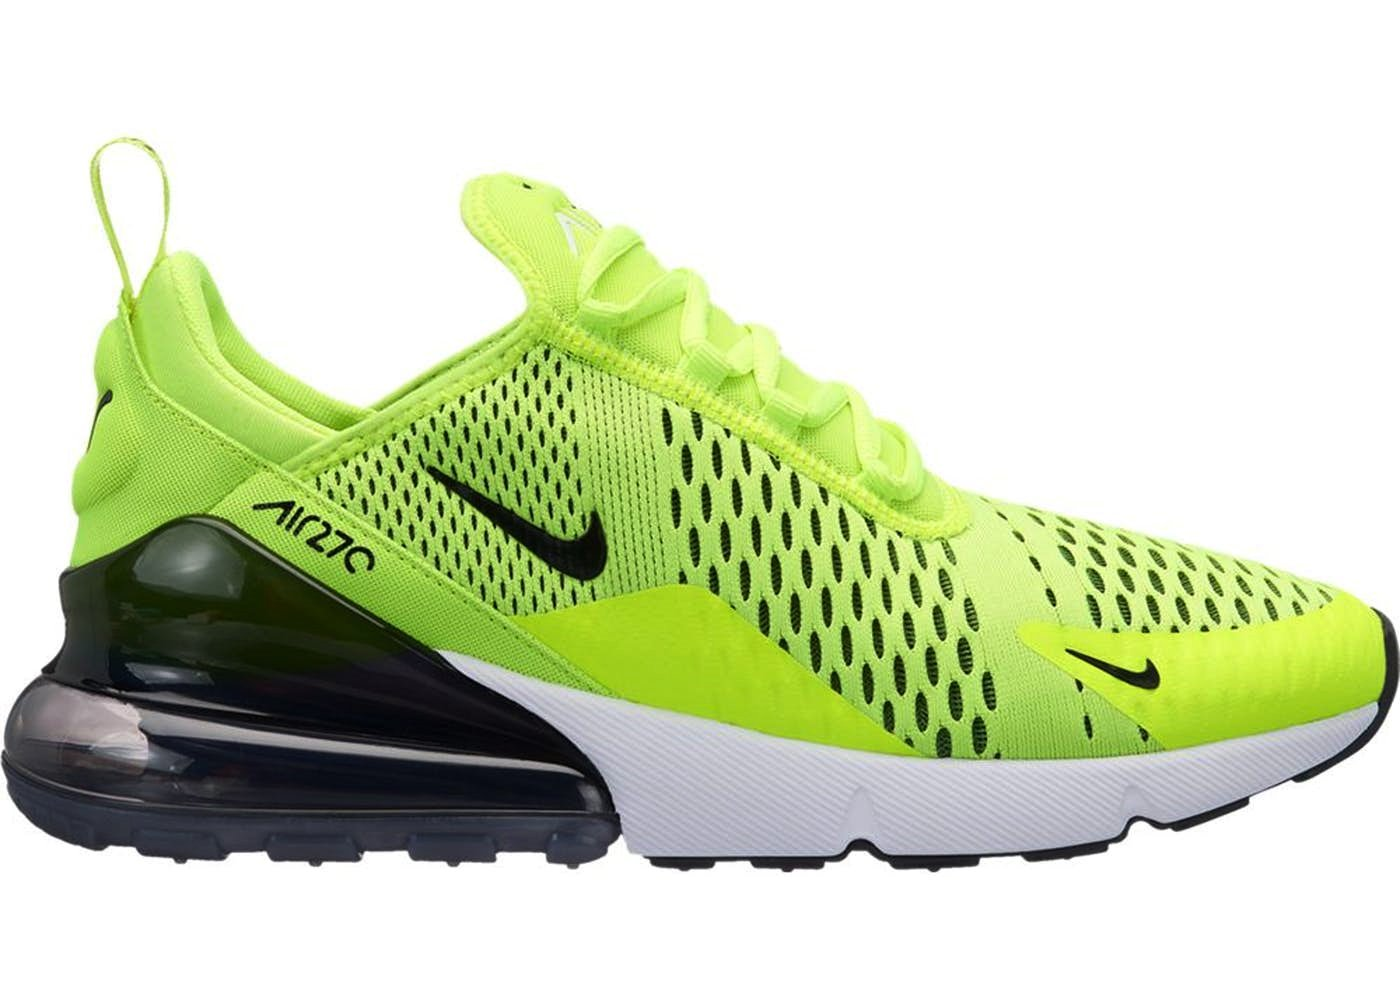 3cec29474a363c Galleon - NIKE Air Max 270 Men s Shoes Volt Black Dark Grey White  Ah8050-701 (8 D(M) US)